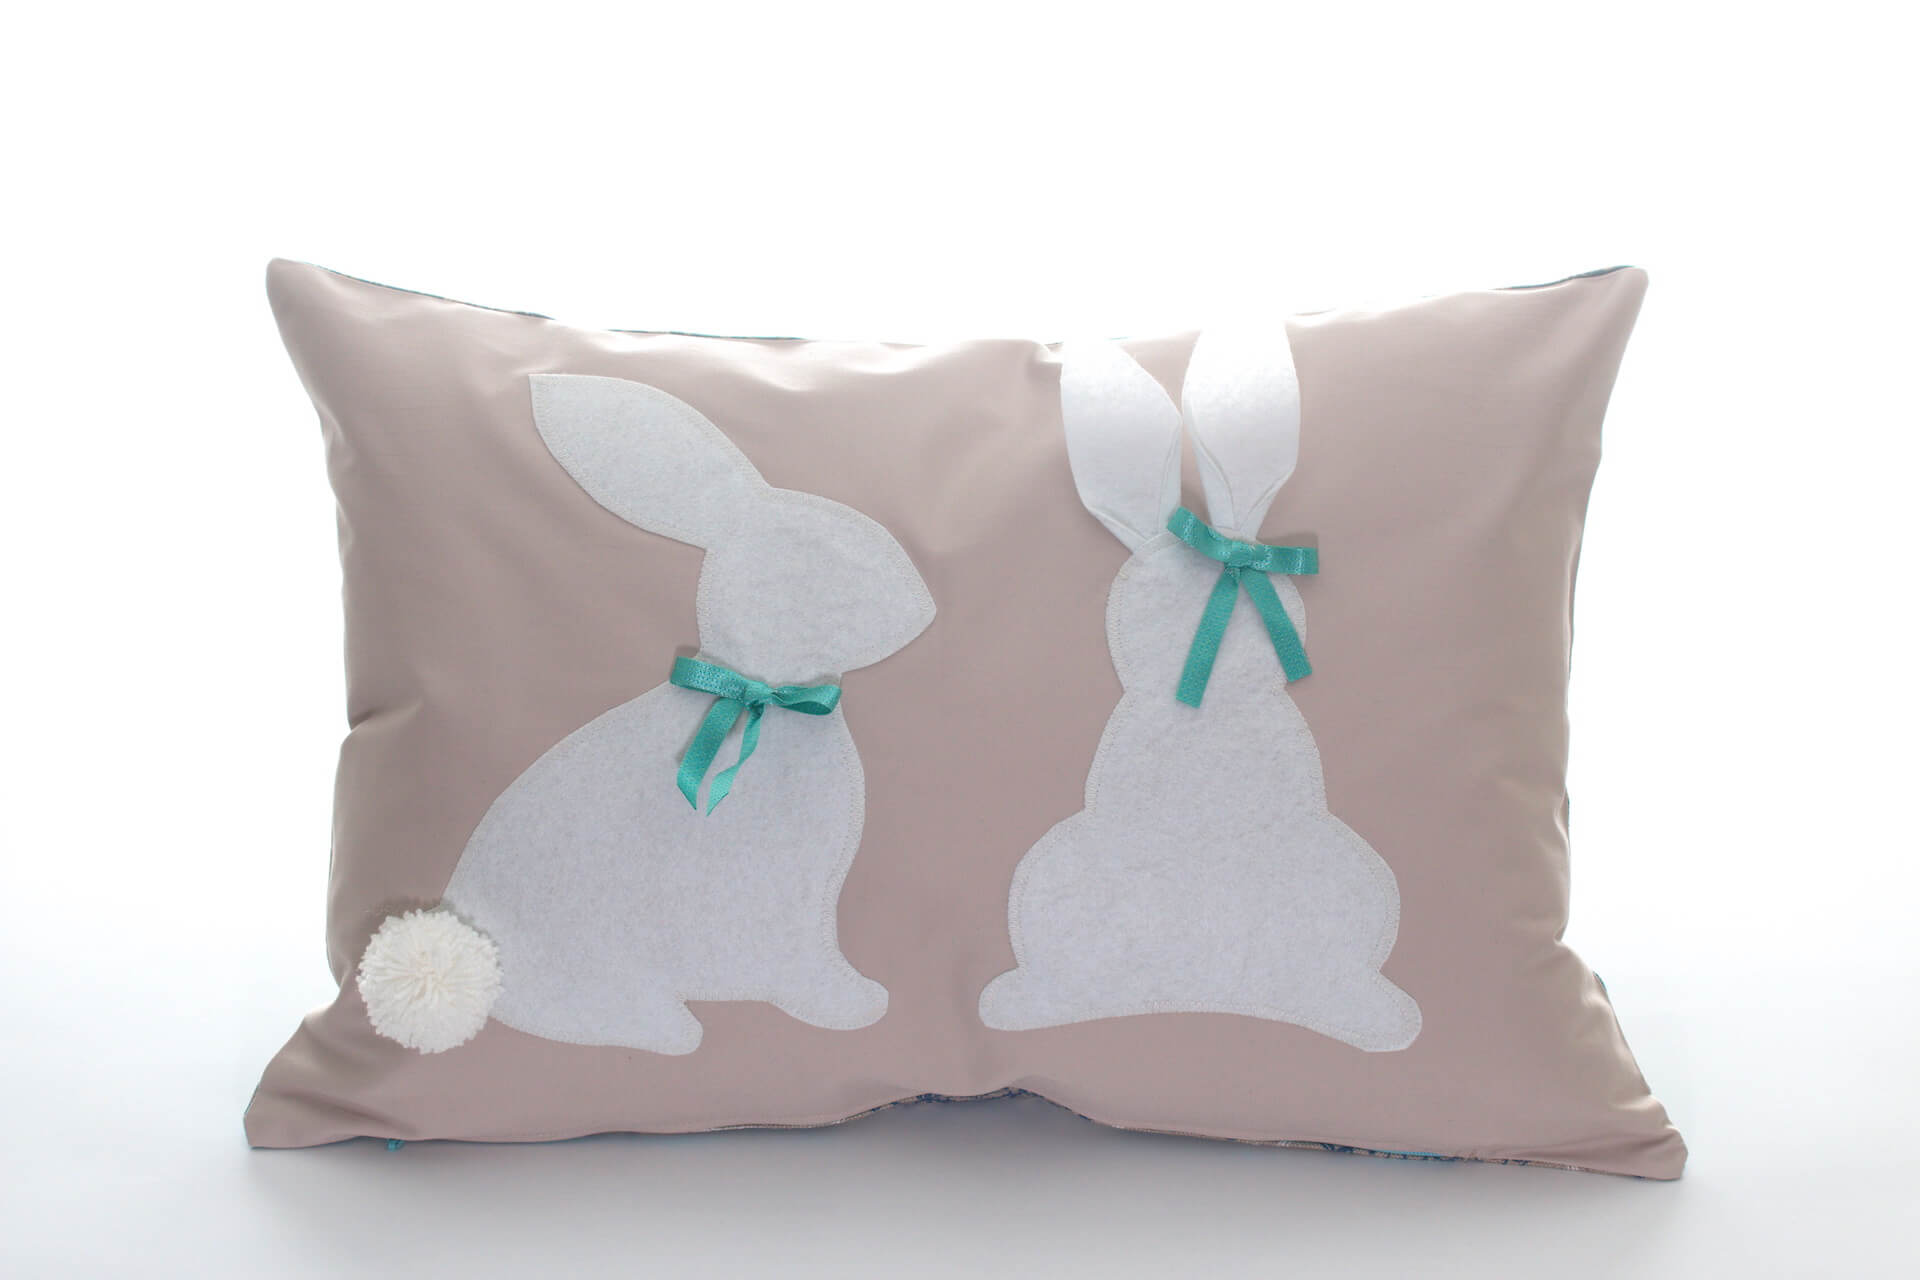 Handmade decorative pillow cream-colored with white bunnies